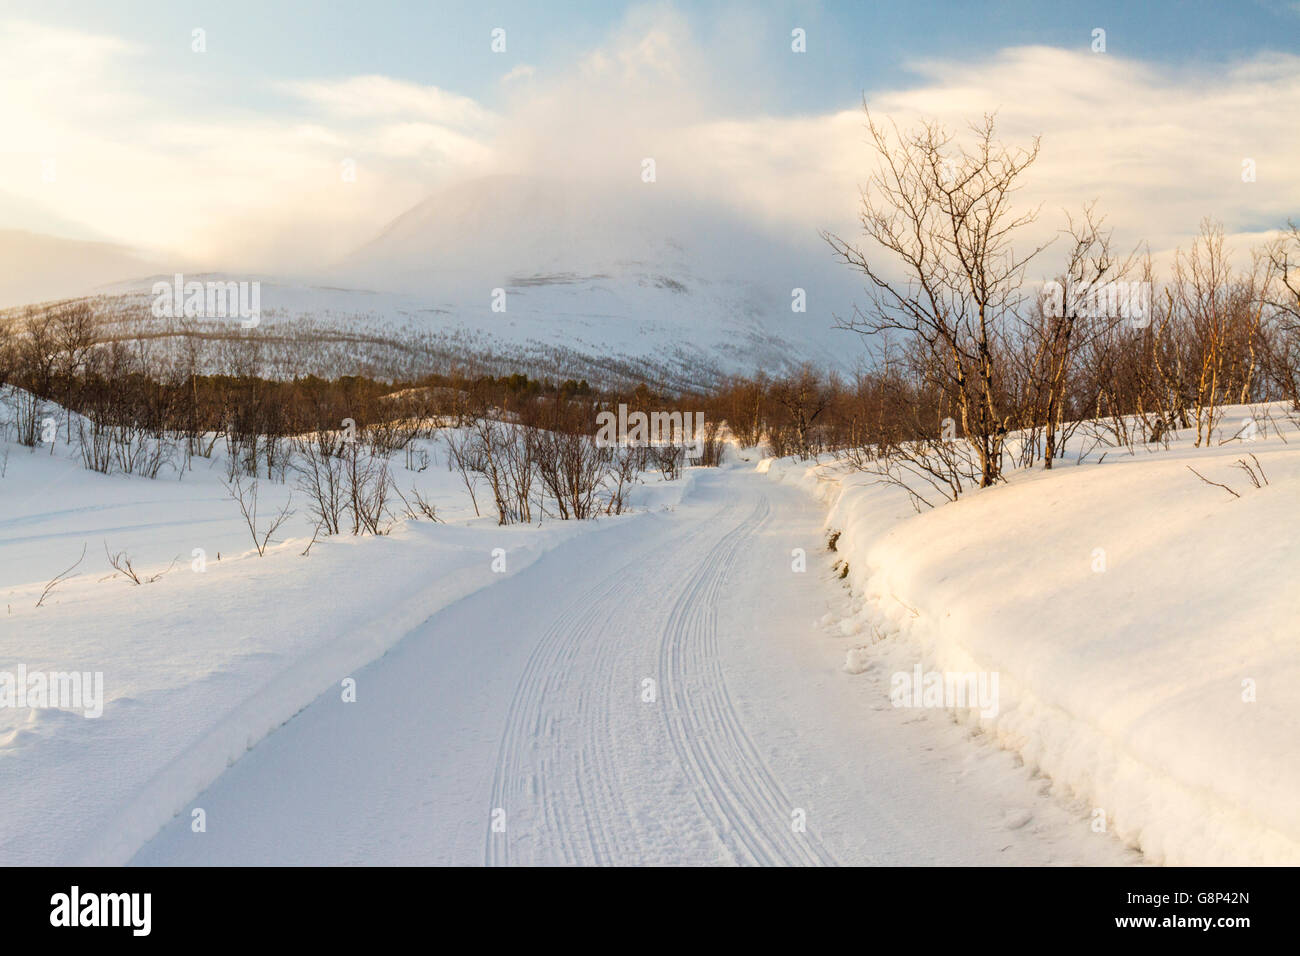 Winter landscape in Nikkaluokta with a winter road going towards big mountains in the background taken at sunset, Stock Photo